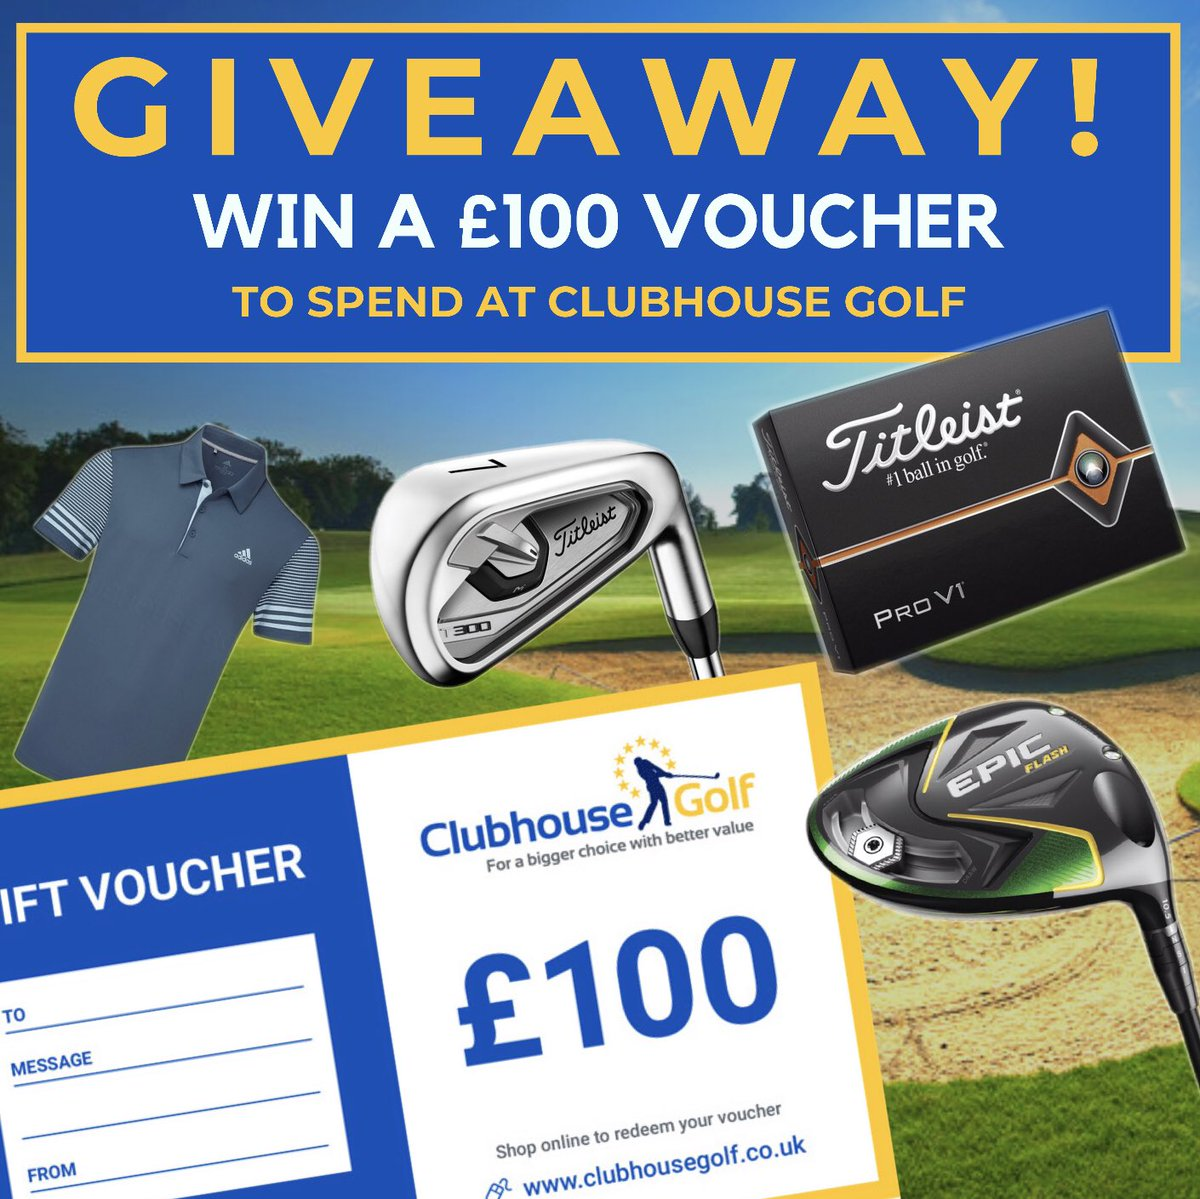 WIN a £100 VOUCHER to spend at Clubhouse Golf! 🙌🏽 We are giving away a FREE £100 voucher to spend online at clubhousegolf.co.uk 👉🏼 For your chance to win, simply 1. FOLLOW 👉🏼 @ClubhouseGolf 2. RETWEET this post Competition end Sunday 1st September at 10pm (GMT). T&Capply